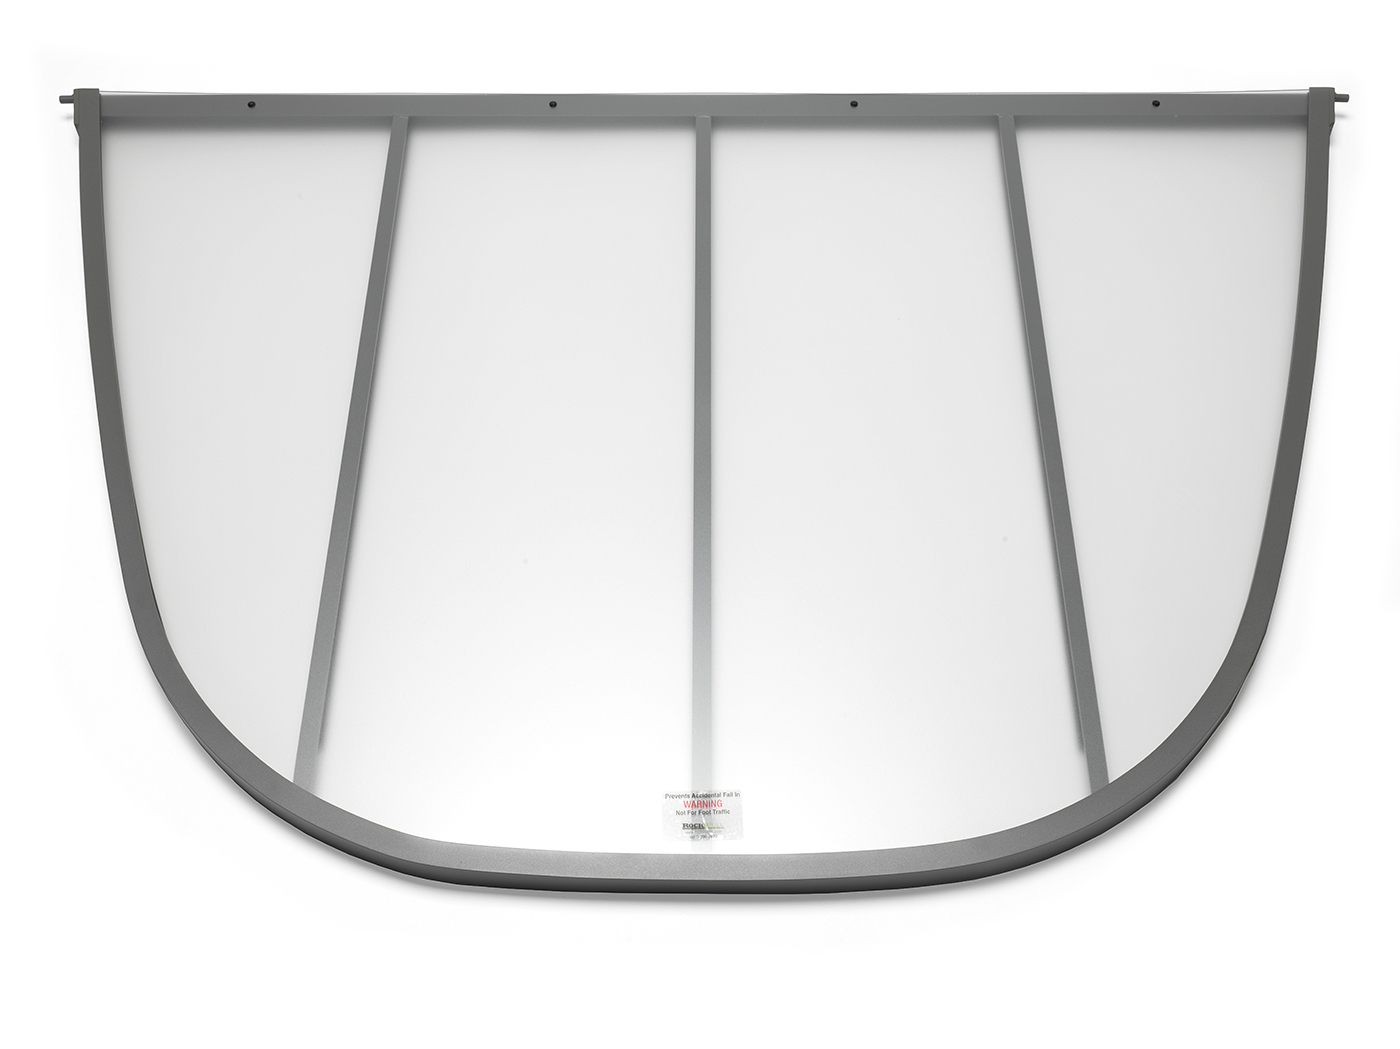 Denali Series Egress Window Well Cover built by RockWell egress window wells, covers, grates, ladders, and accessories